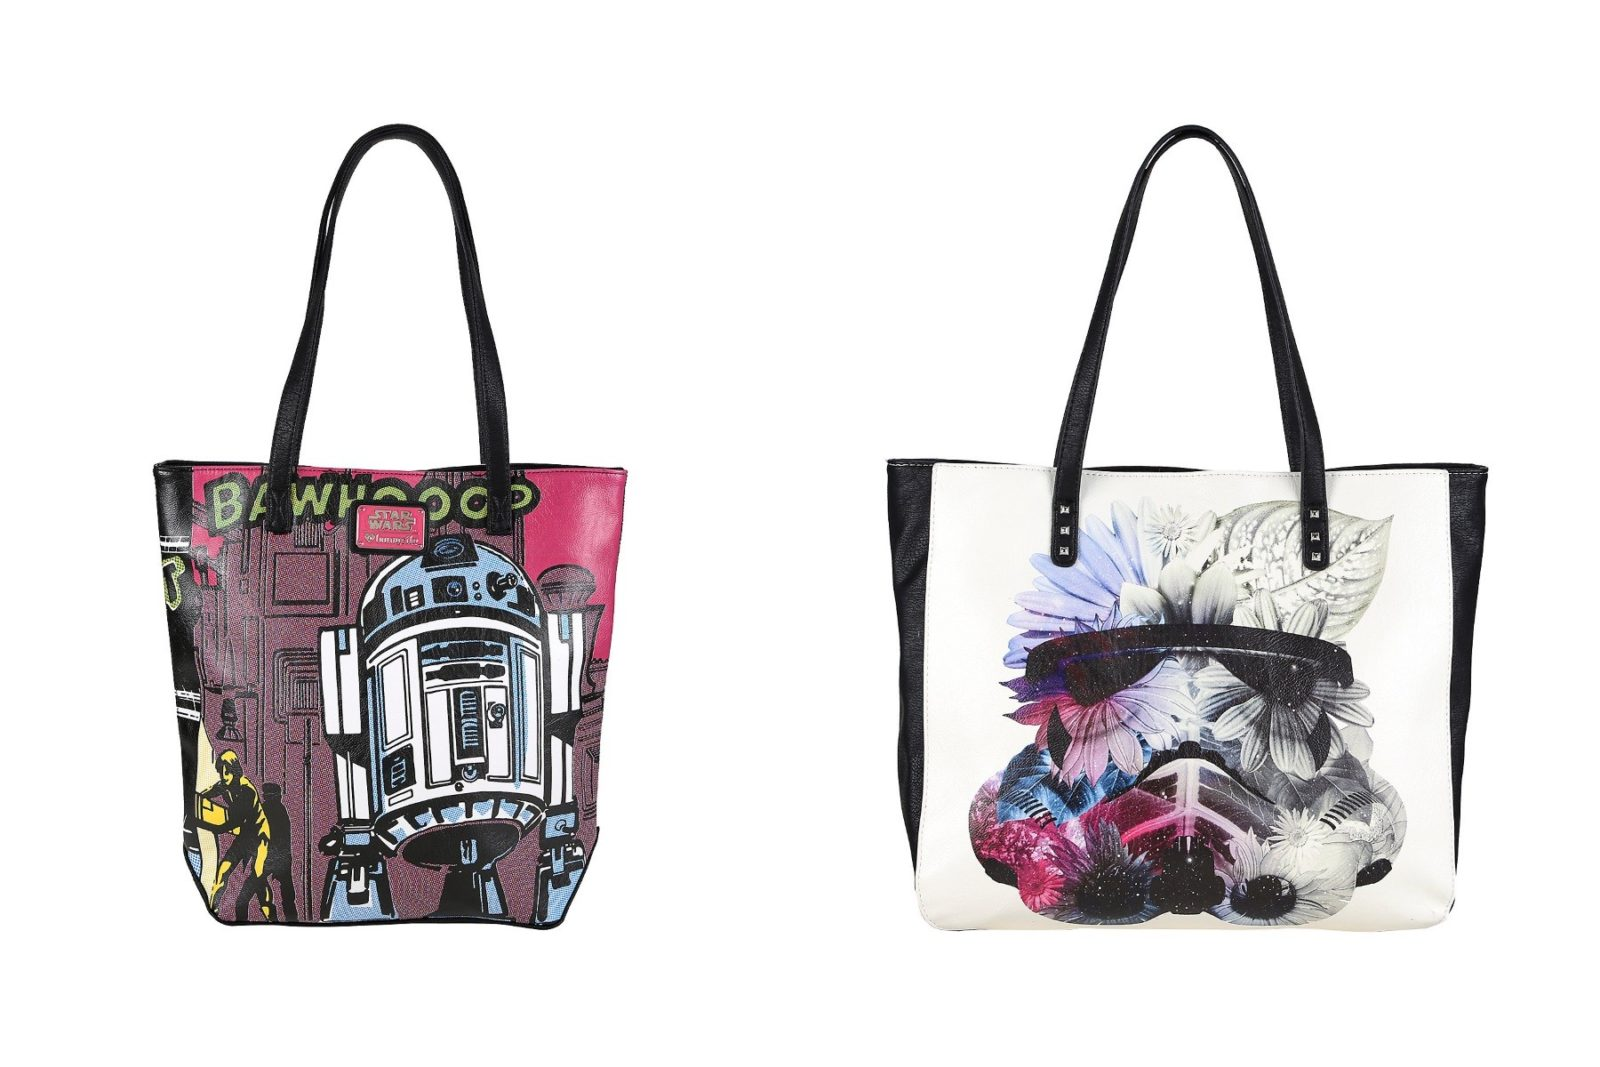 New Loungefly x Star Wars at Hot Topic